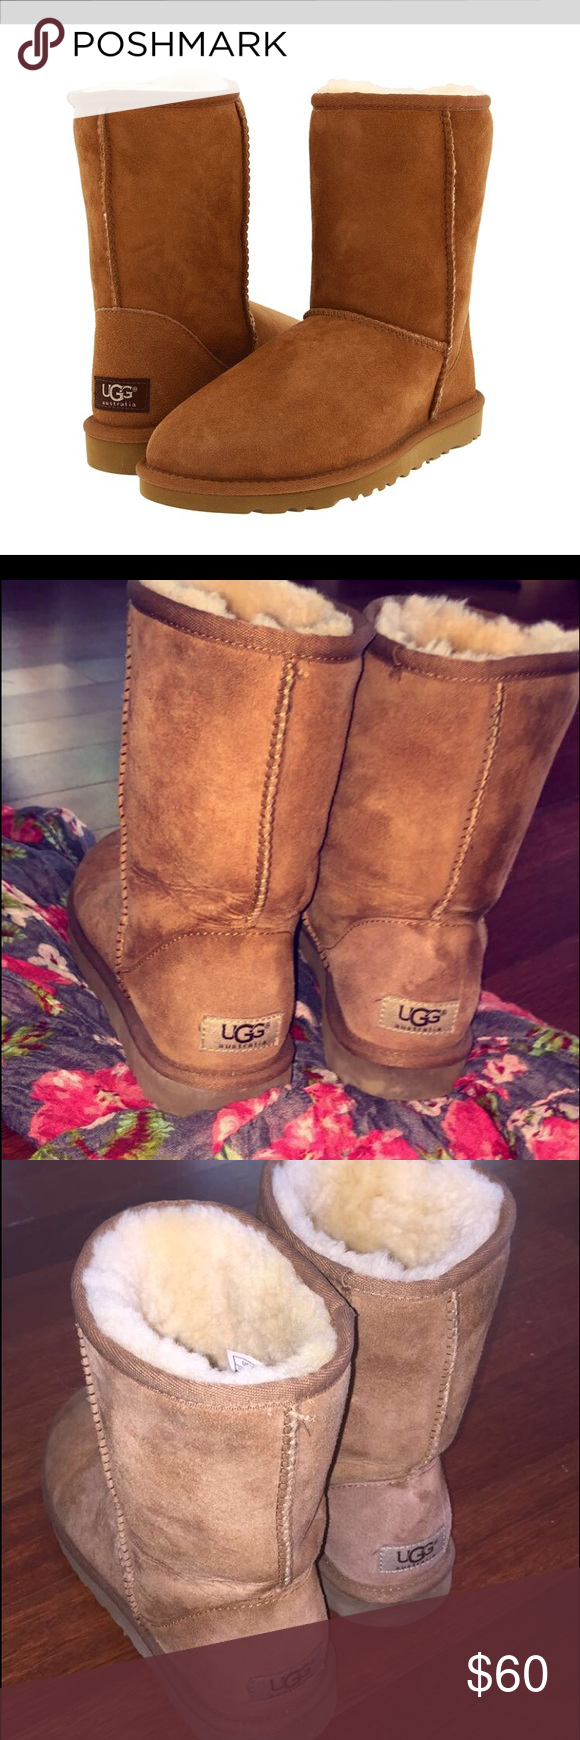 UGGS Classic Short - 6 Chestnut Brown PRE-LOVED 💫